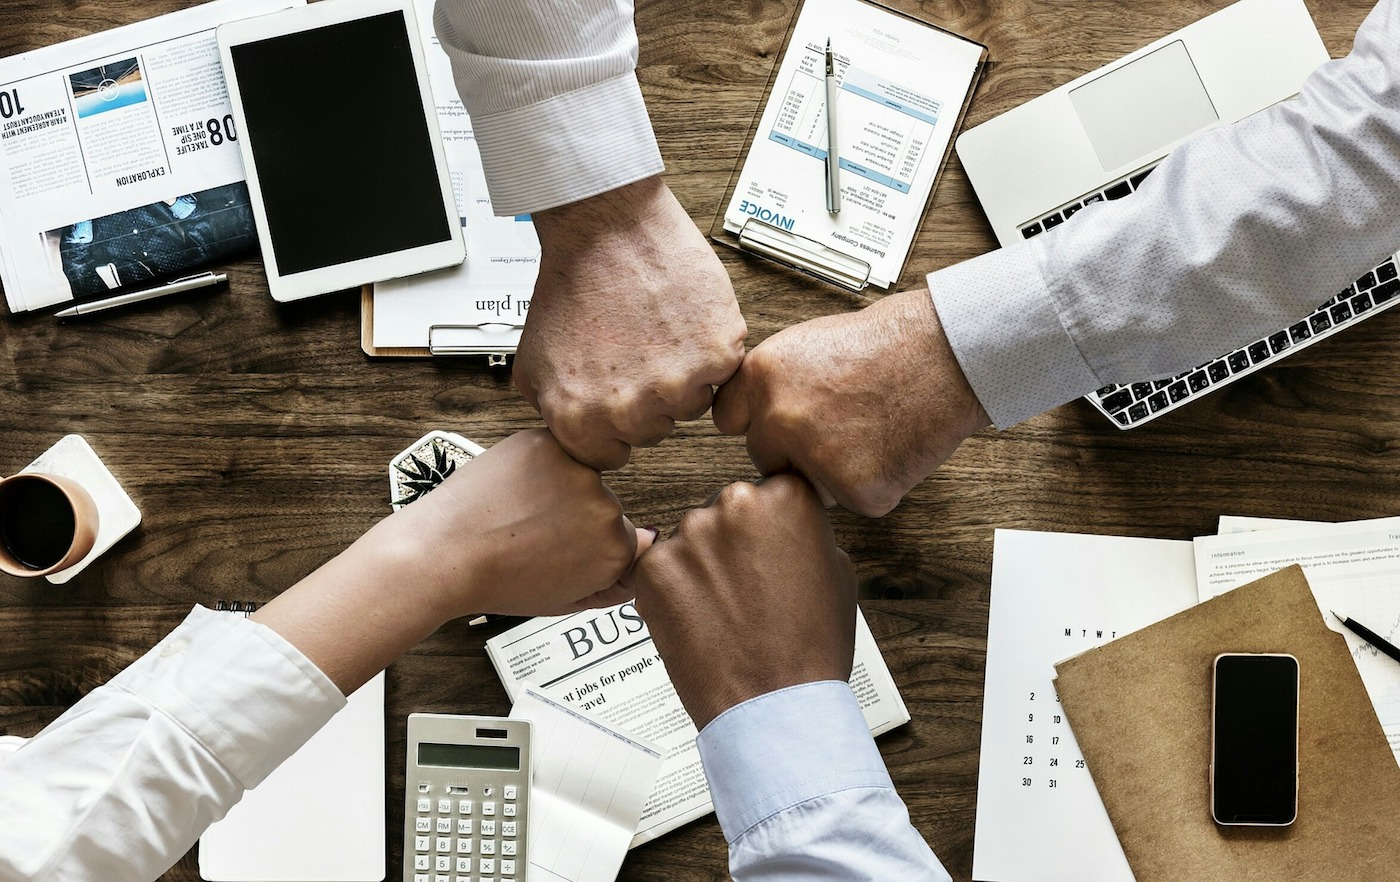 Face-to-face connections are invaluable for marketing